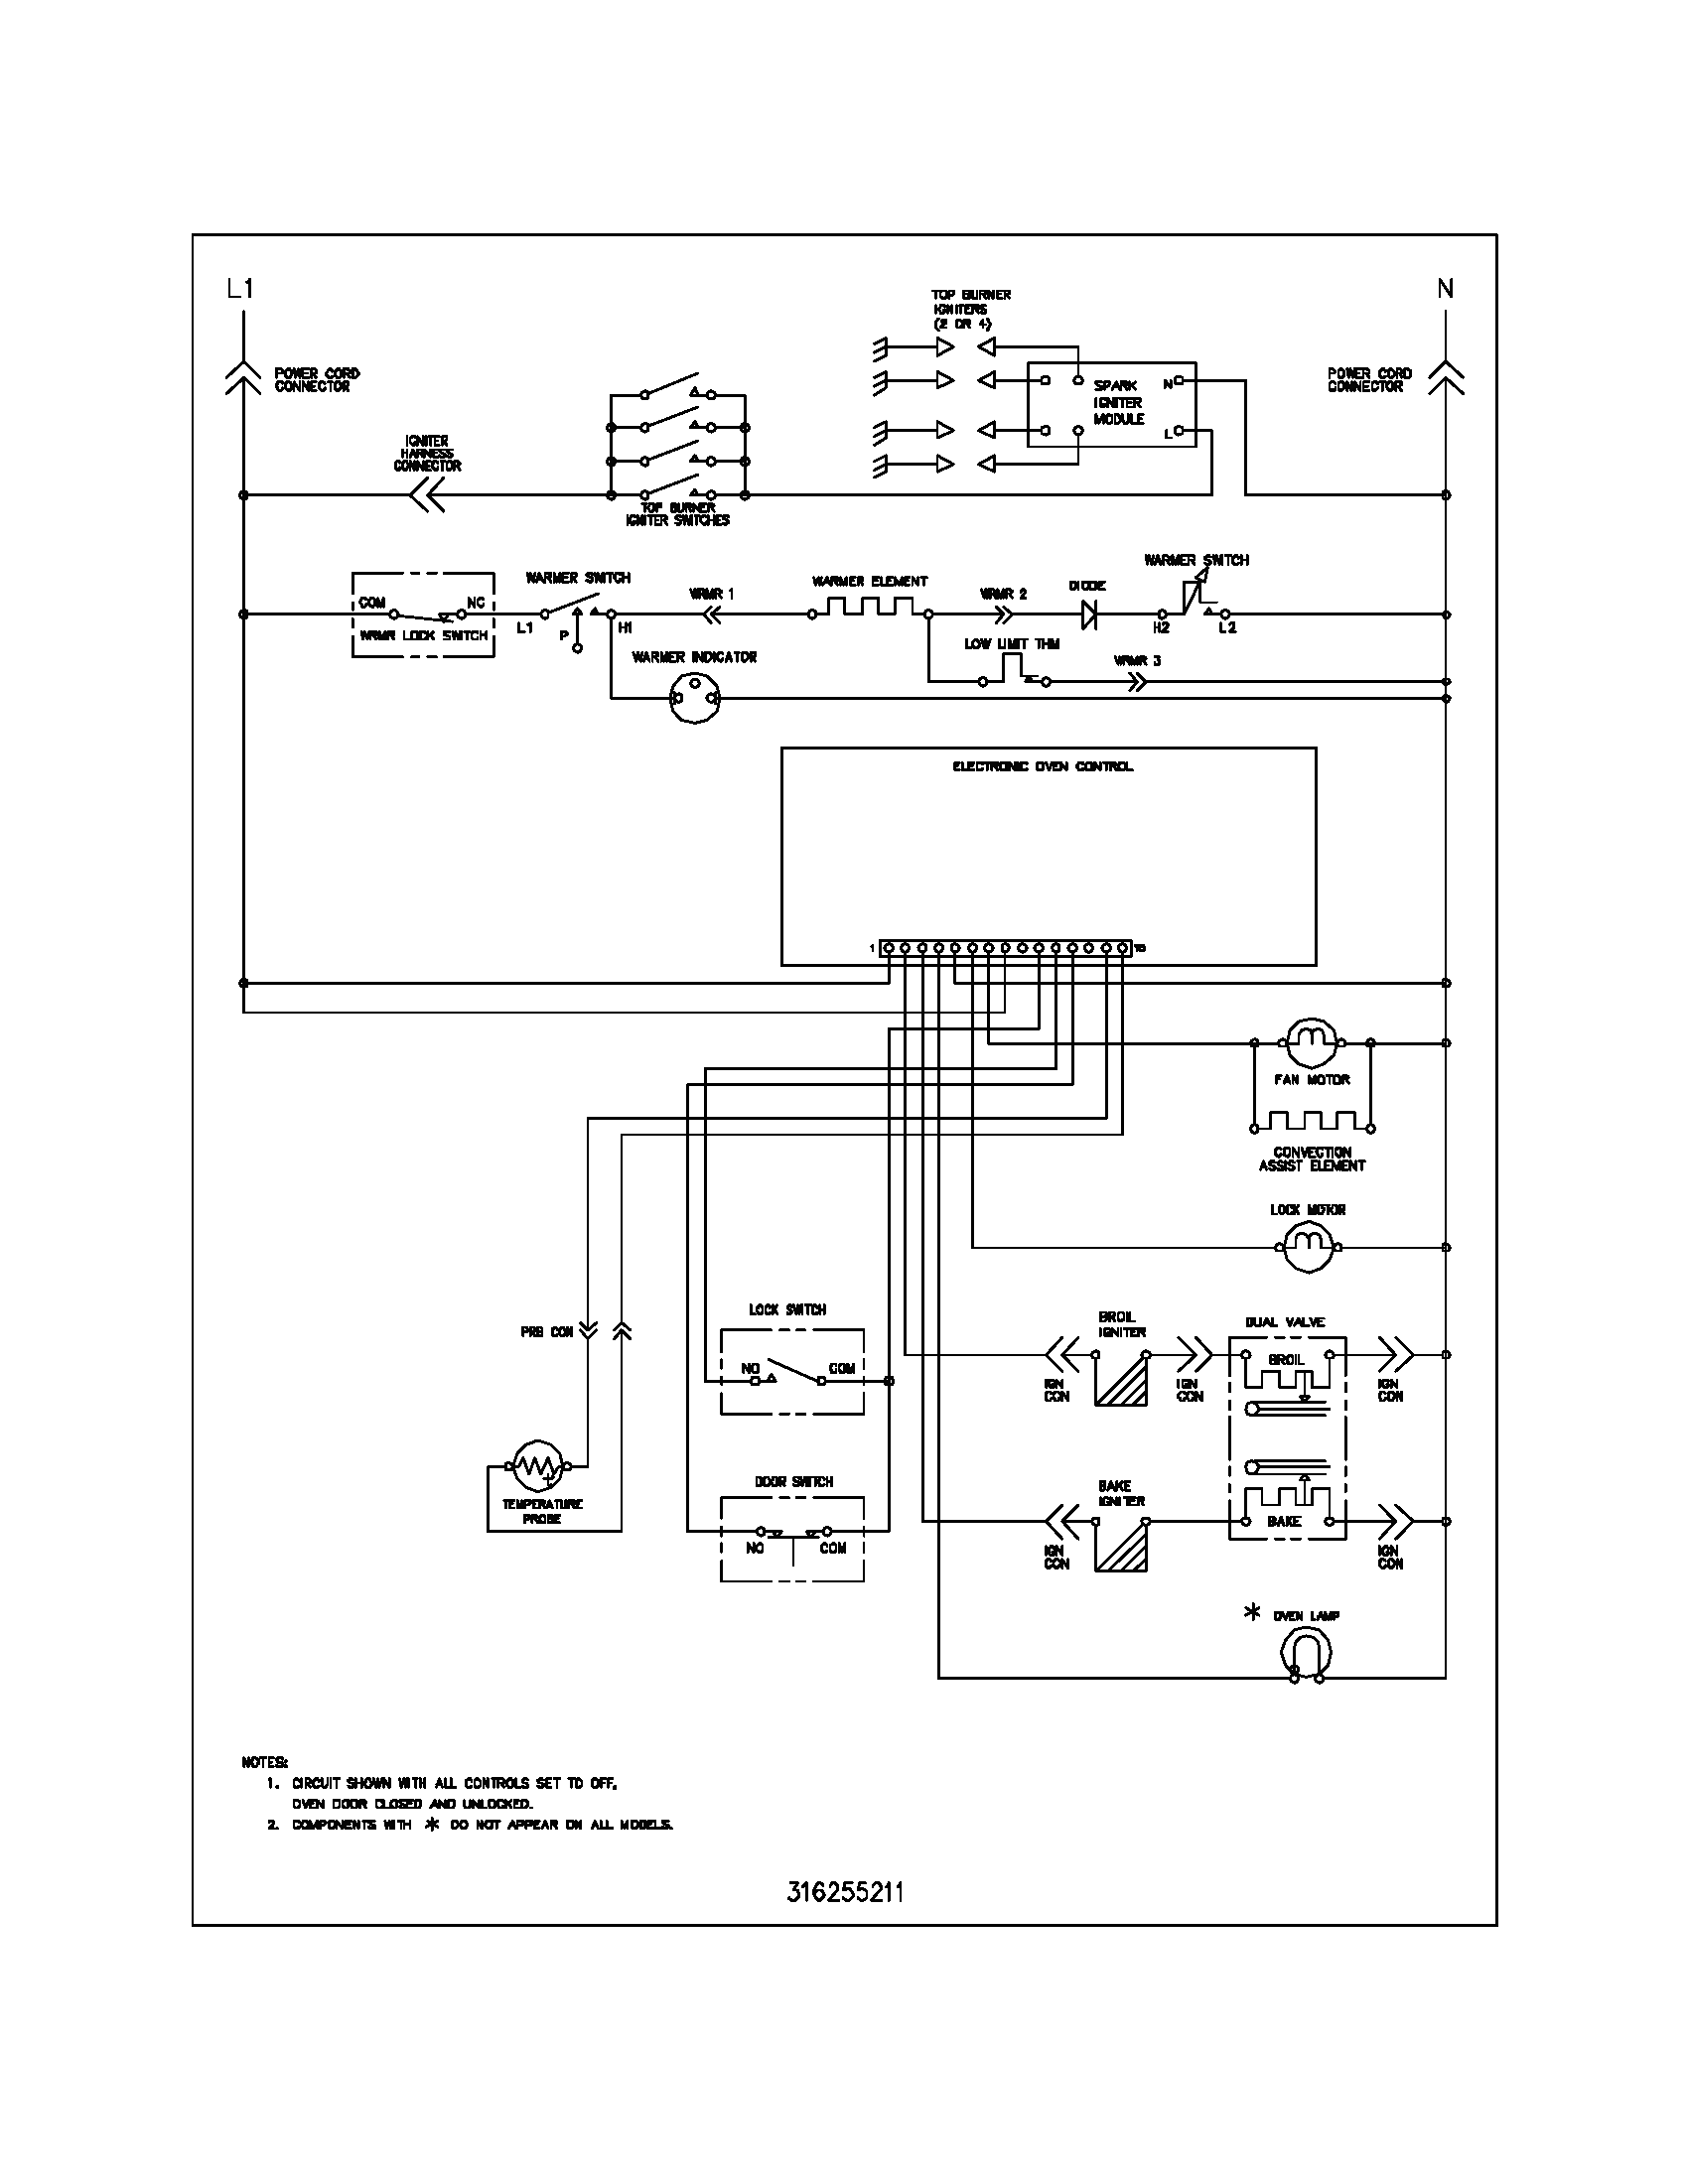 Furnace Wiring Diagram Eb15b Electric Arresting